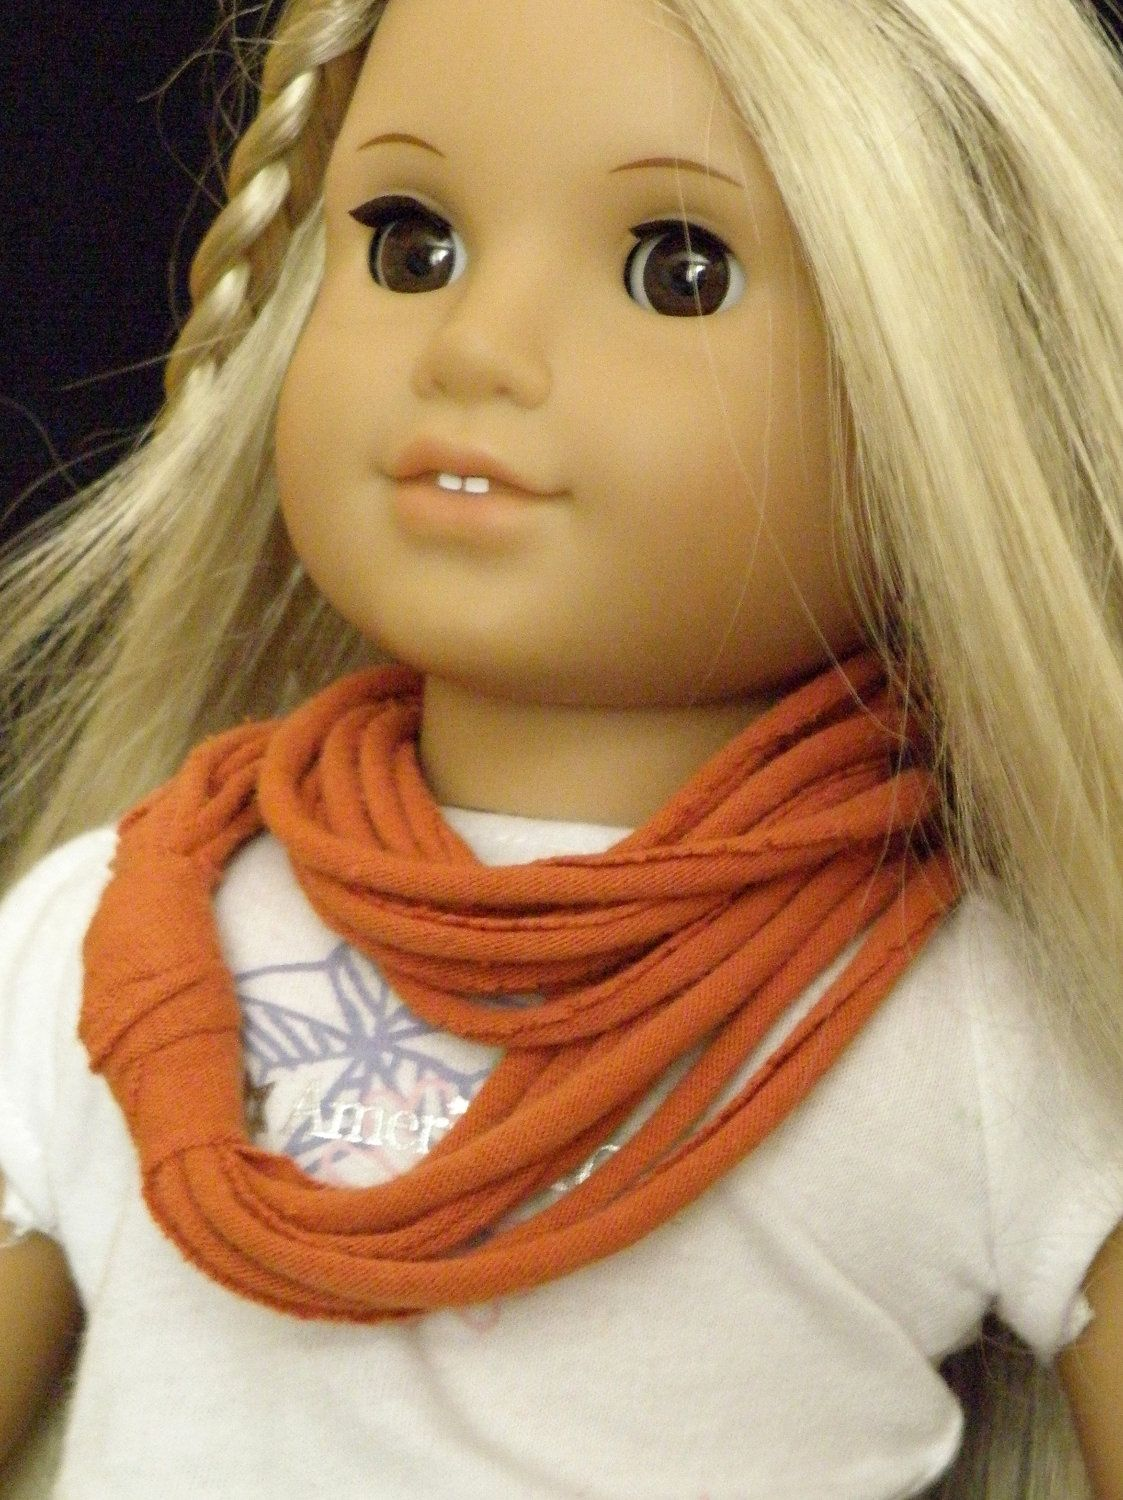 PERIWINKLE Infinity Scarf for Girl or American Girl Dolls